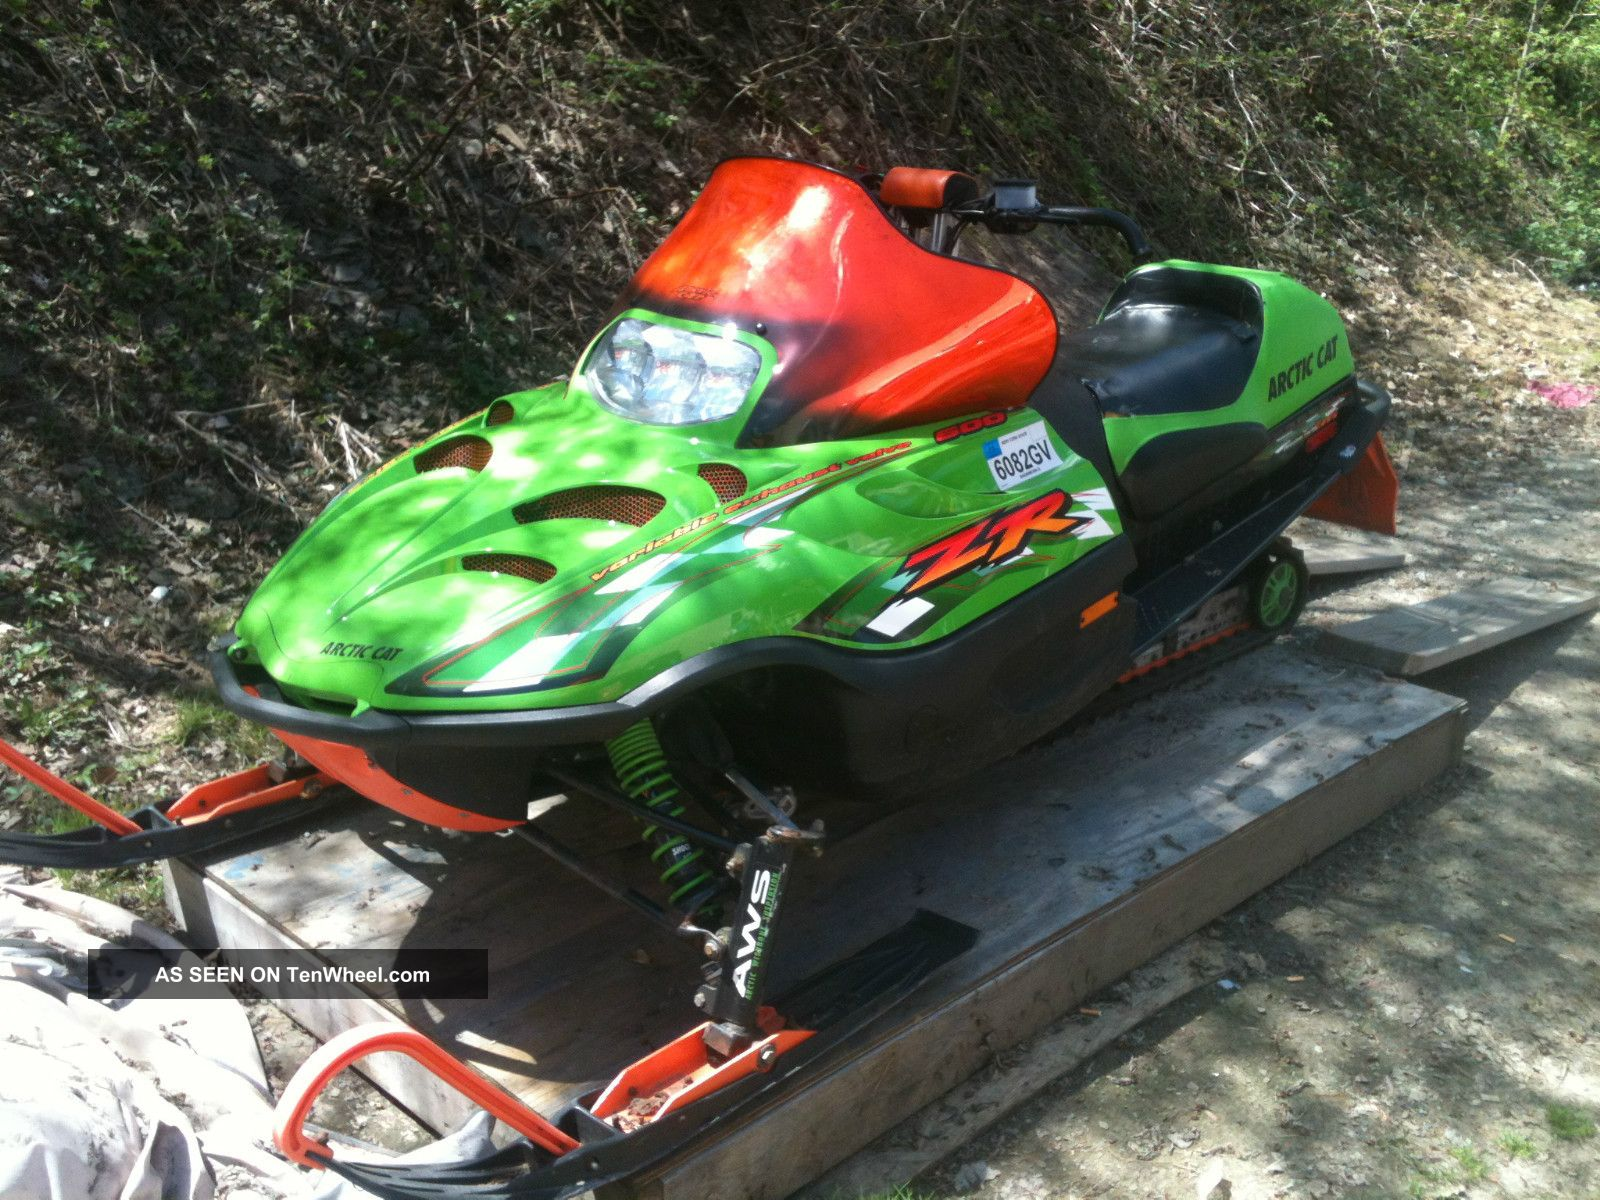 2001 Arctic Cat Zr 600 Efi Arctic Cat photo